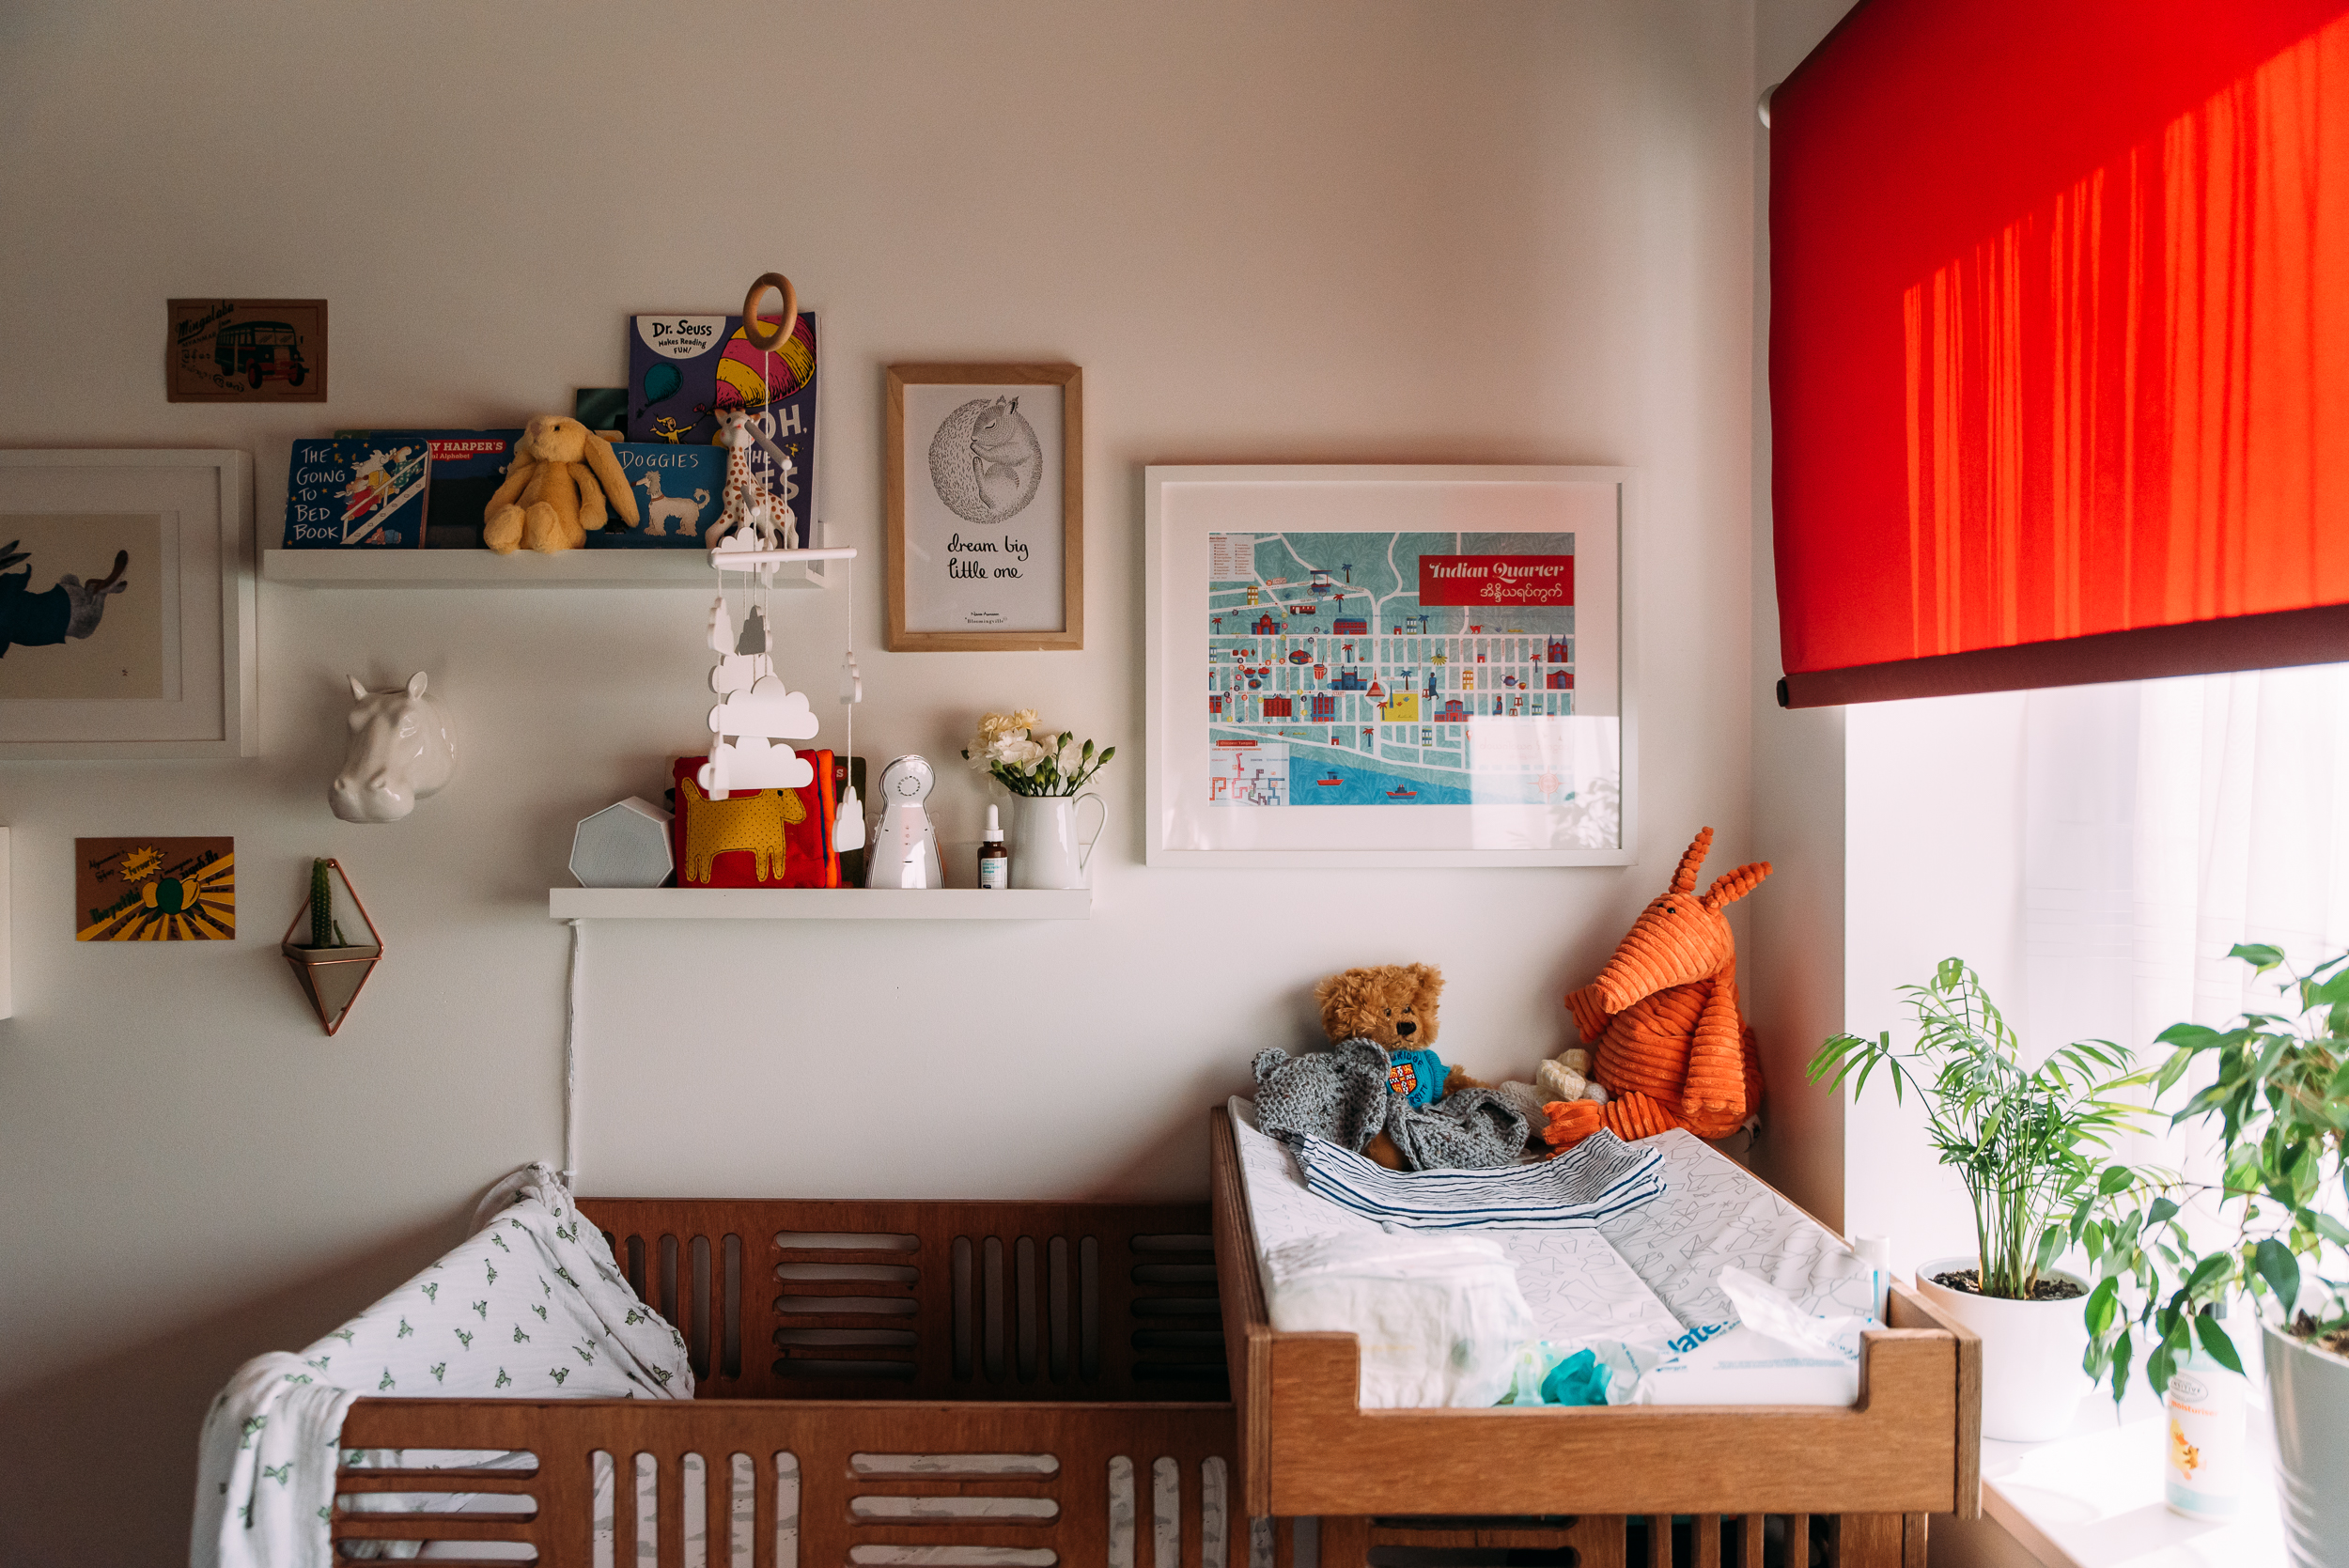 Nursery details during a newborn photo session in Cambridge, UK